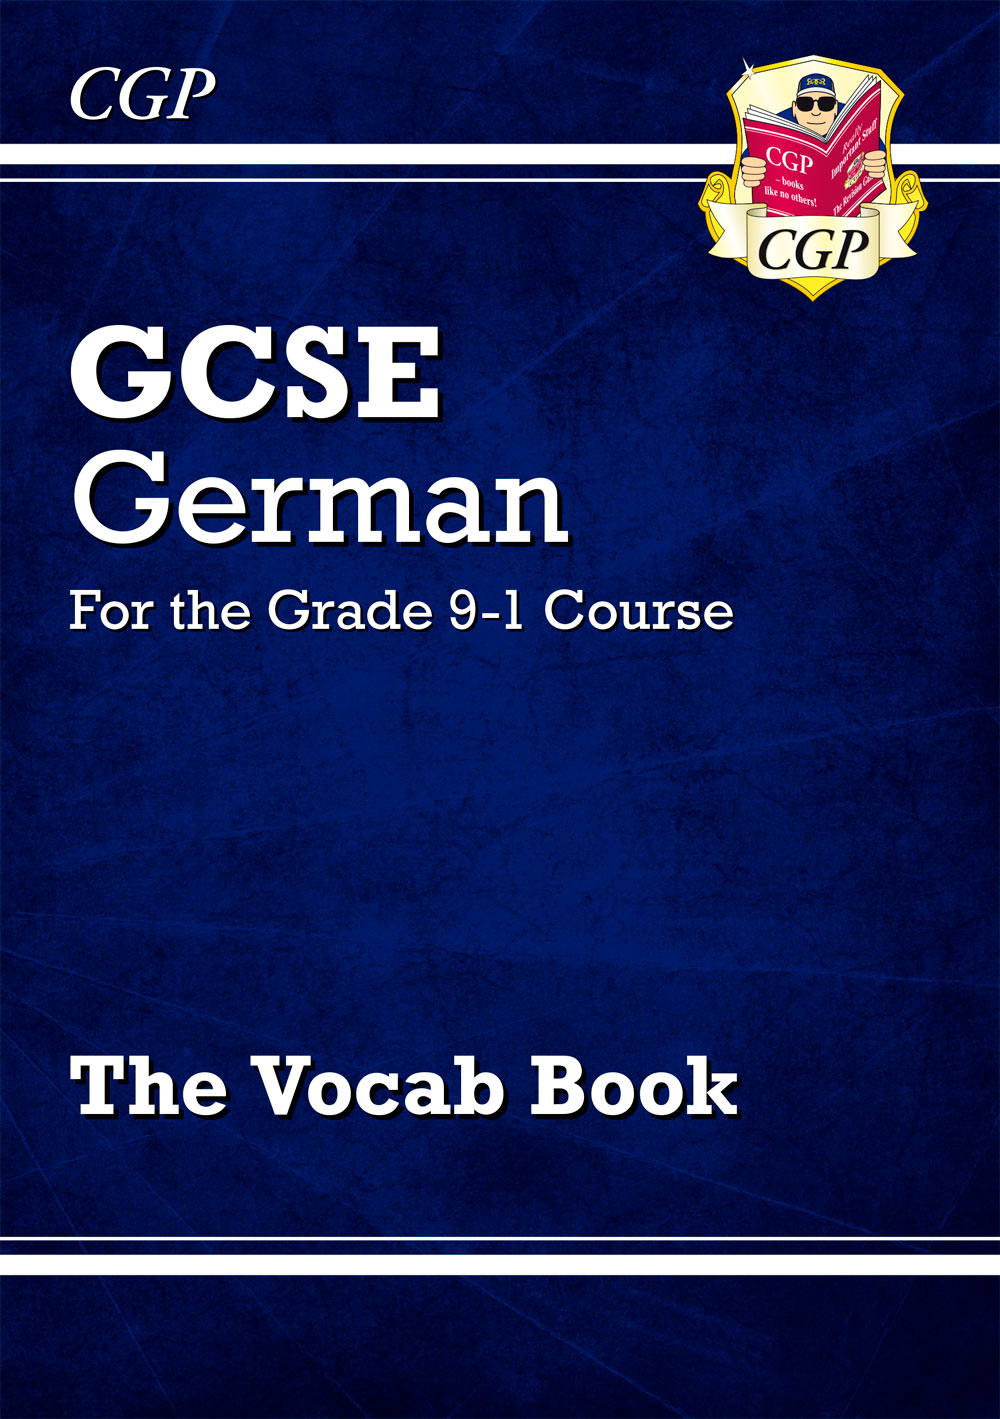 DHV41 - New GCSE German Vocab Book - for the Grade 9-1 Course